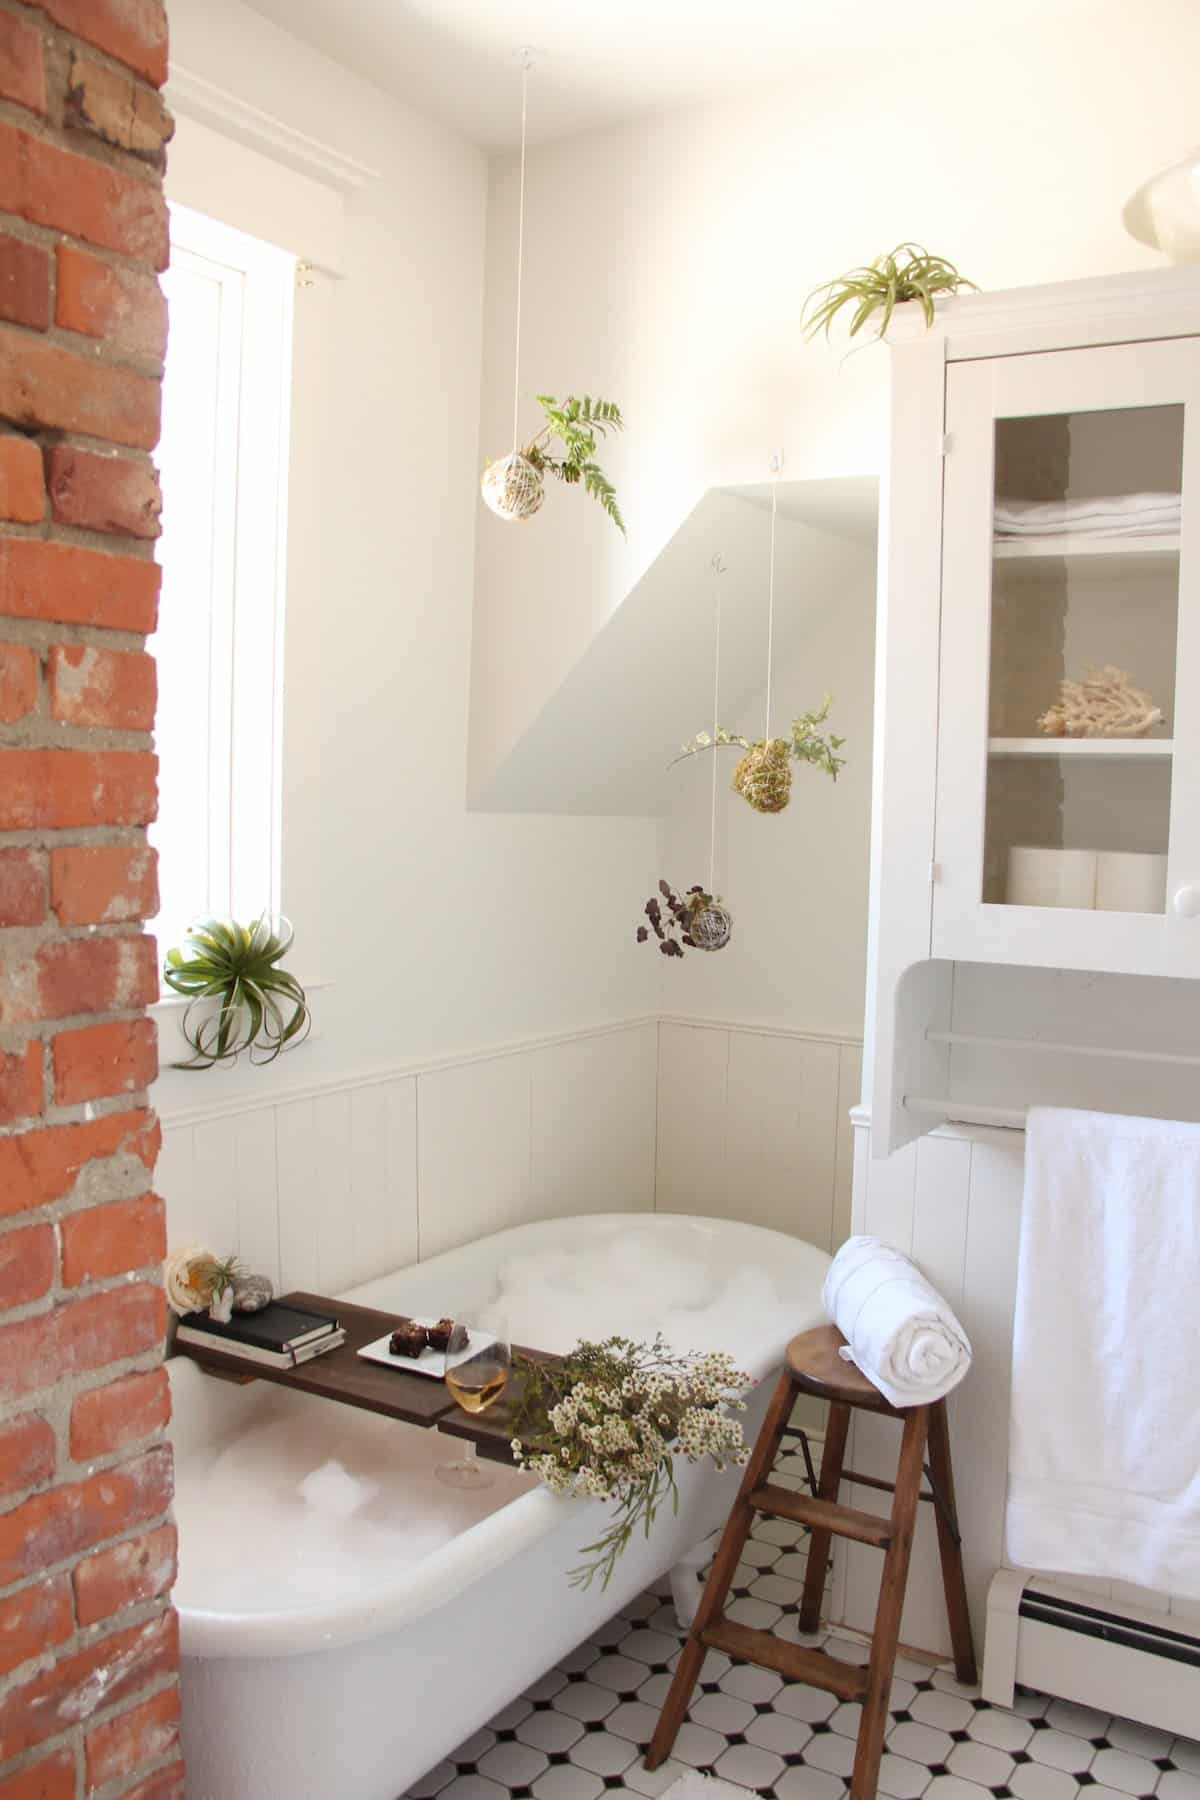 DIY Spa Bath: How to Create a Luxury Bubble Bath - Home for the ...